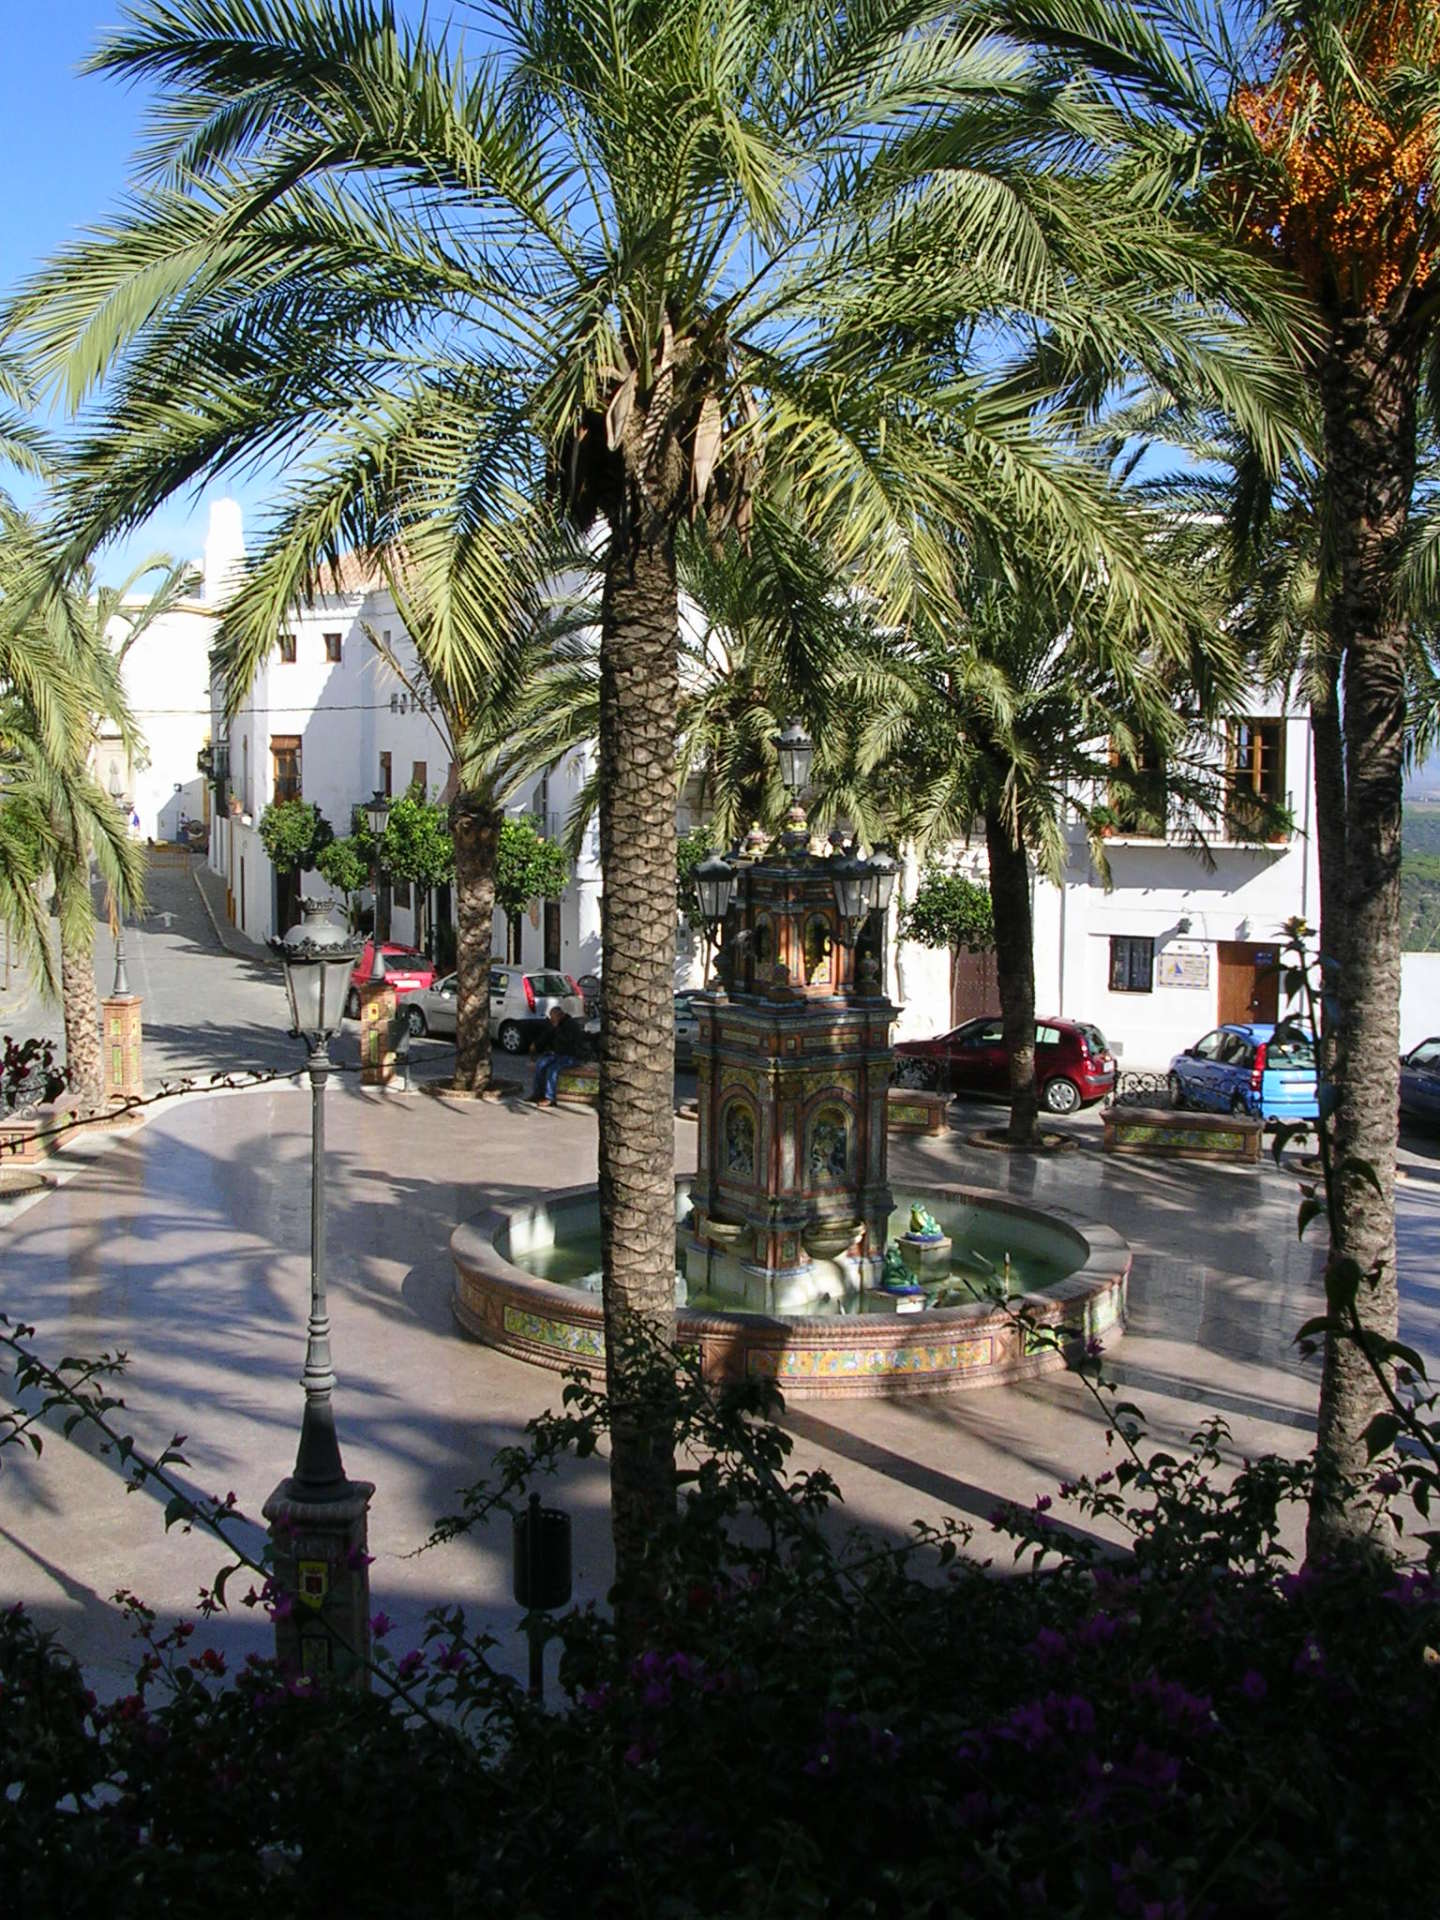 Plaza Espana in Vejer